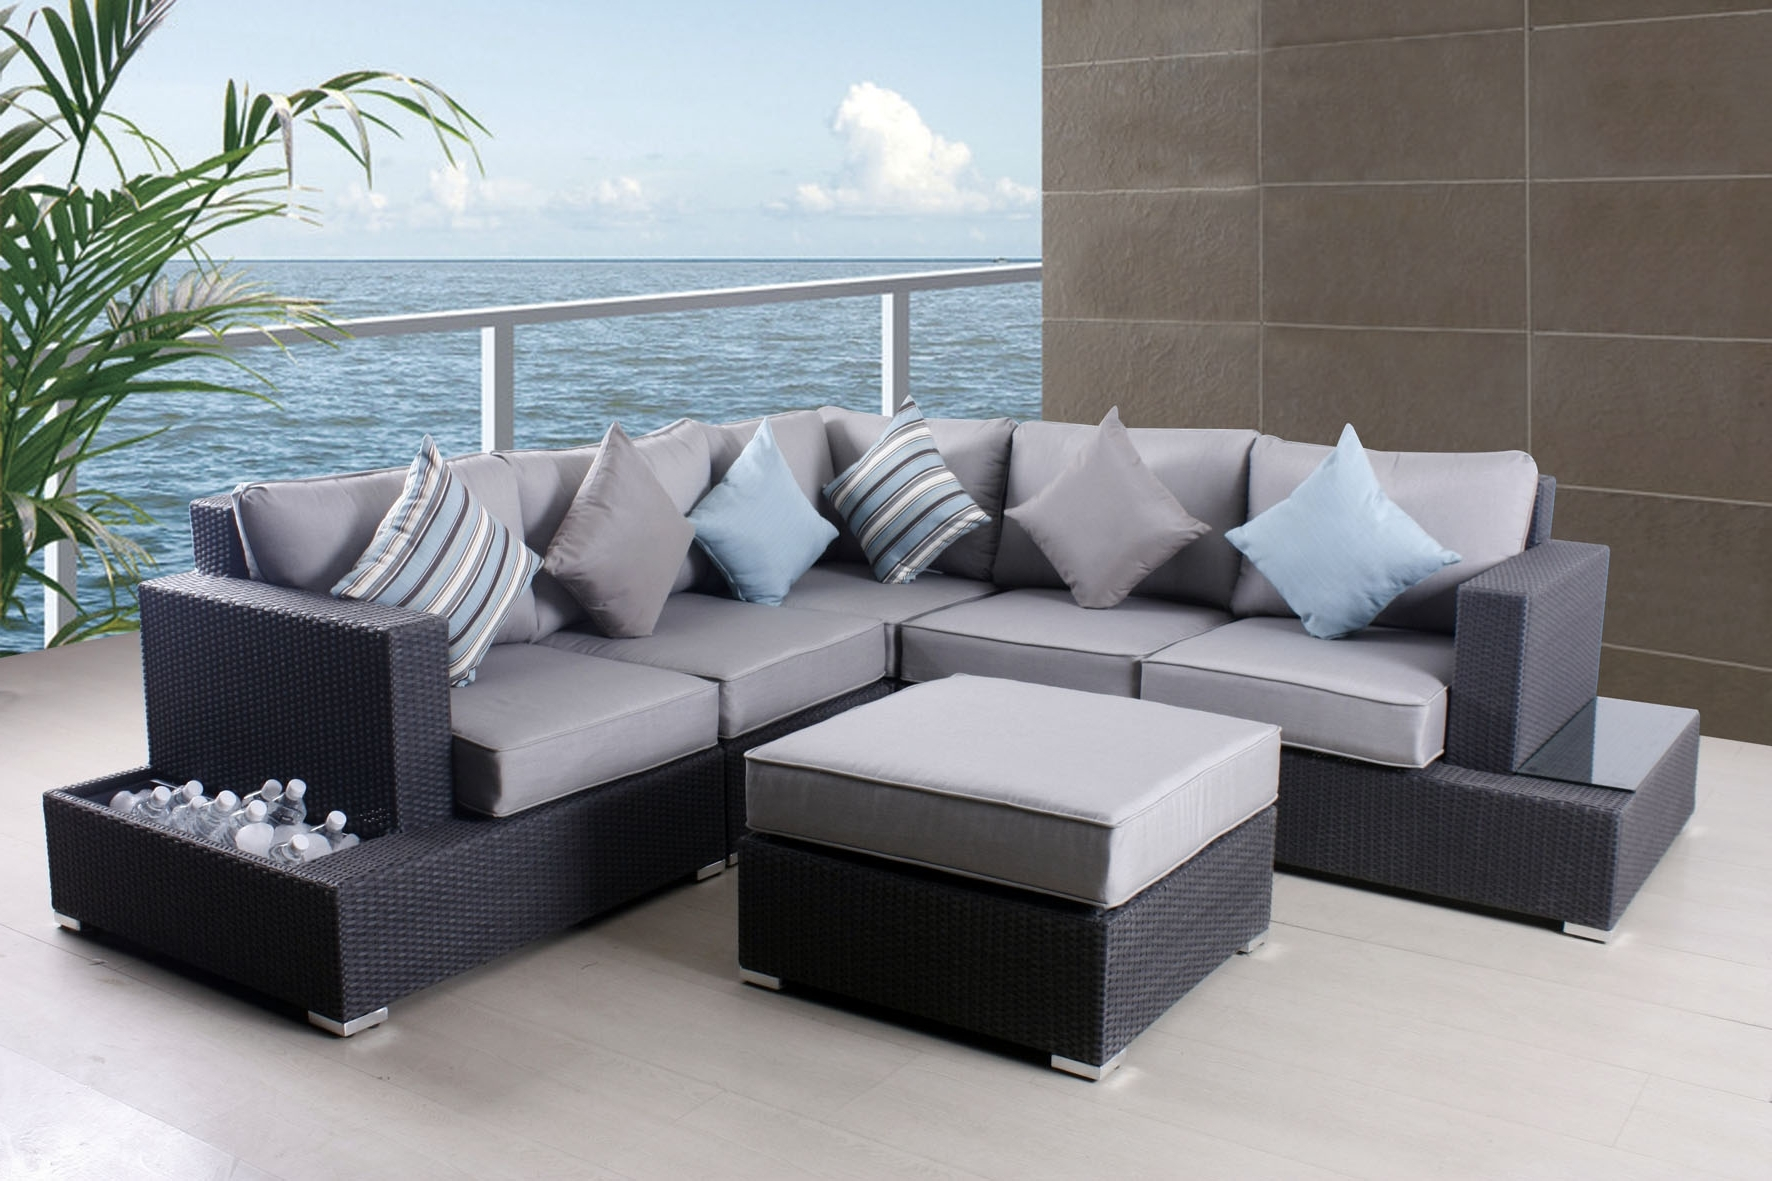 Grey Patio Conversation Sets Inside Widely Used Stylish Grey Patio Furniture Patio Grey Patio Furniture Sofa Set (View 8 of 20)